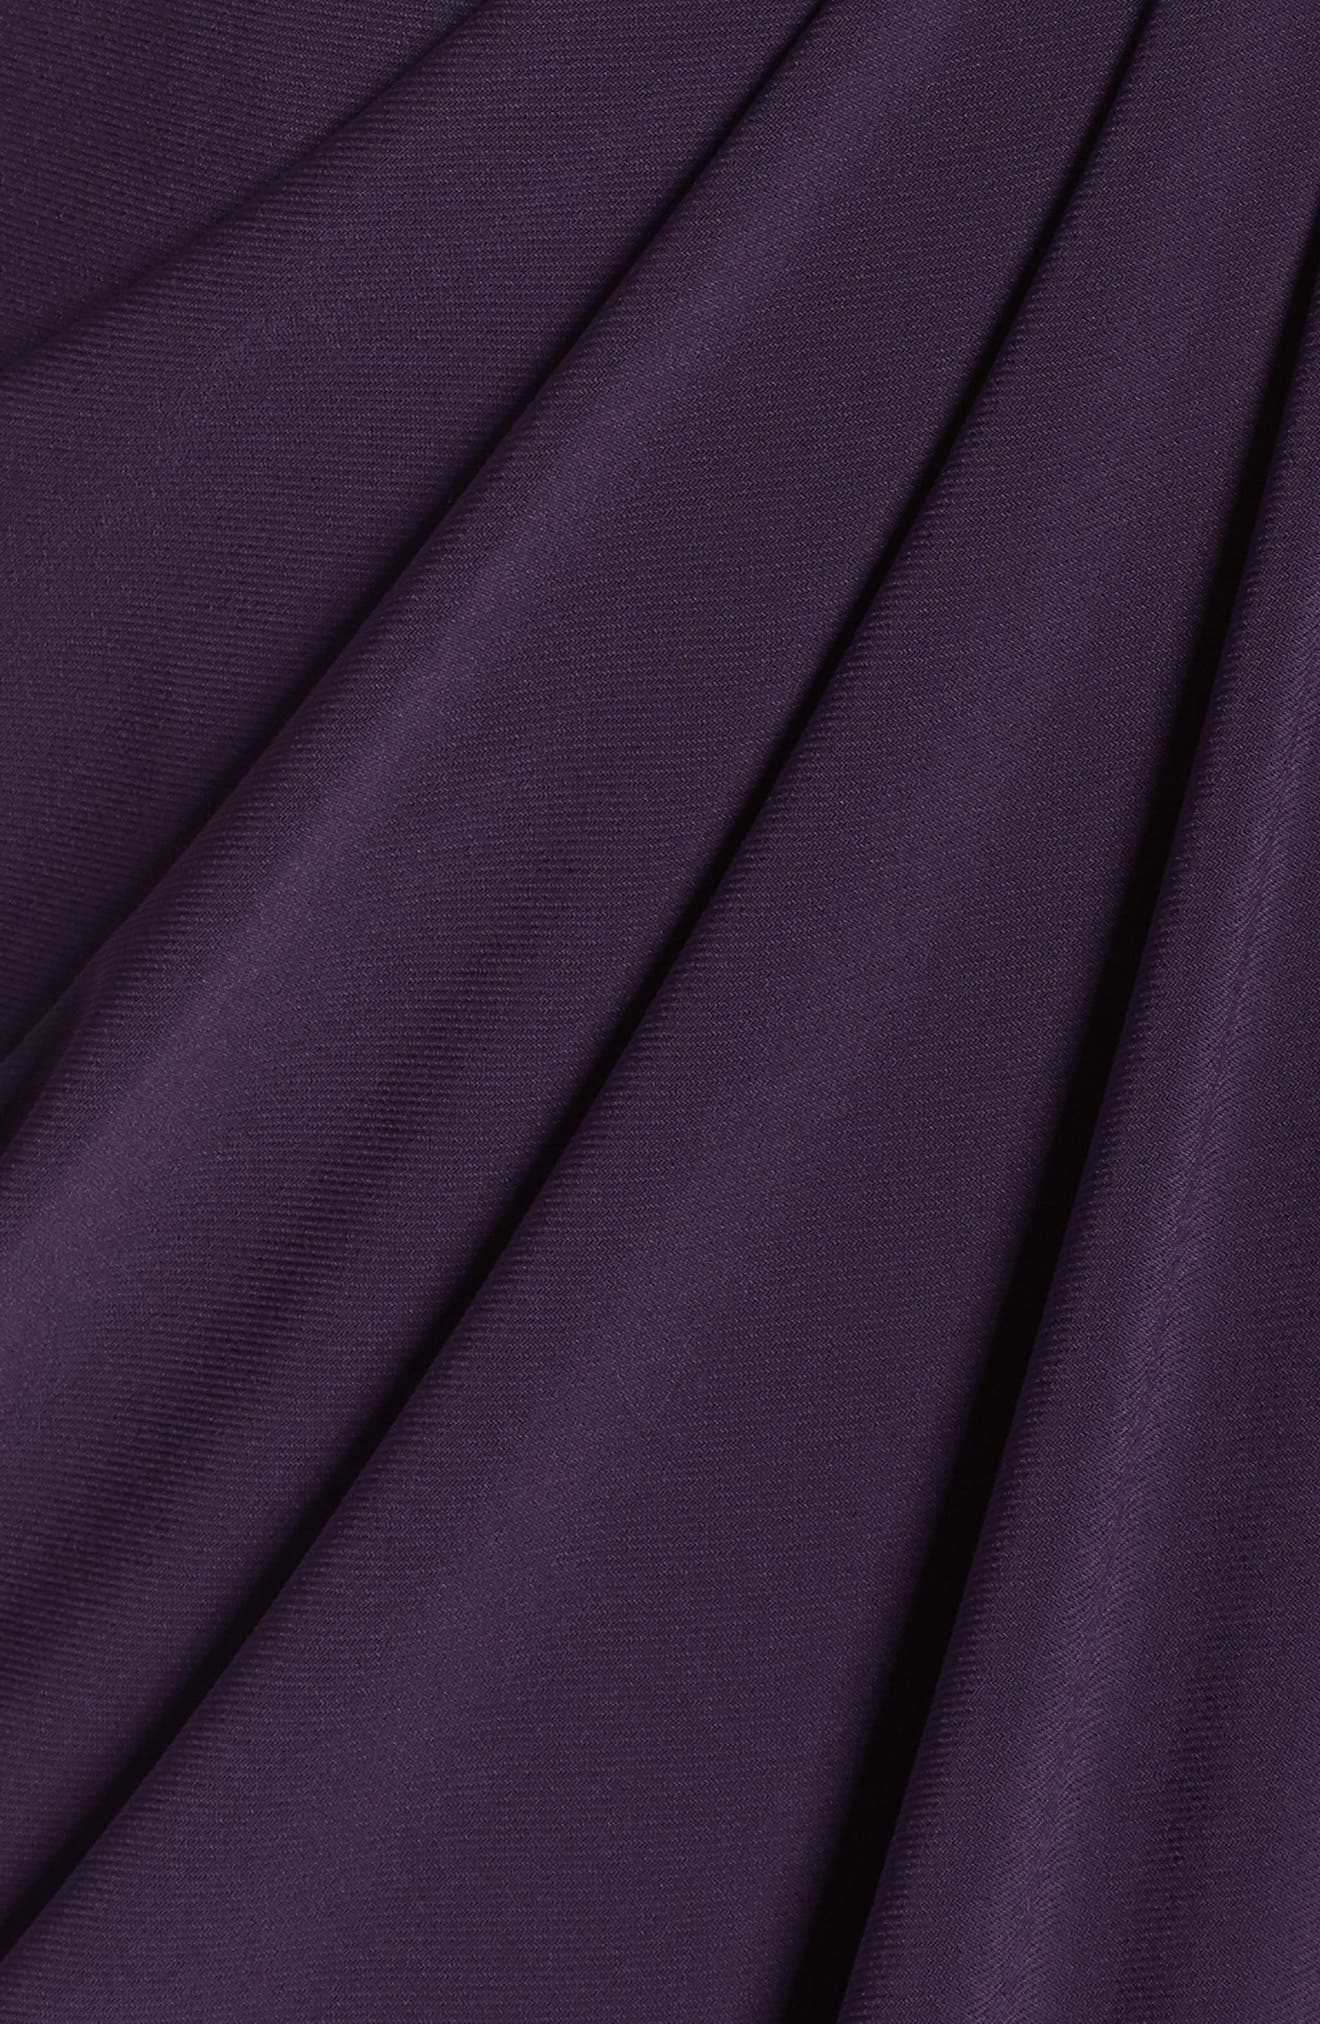 Beaded Jersey Gown,                             Alternate thumbnail 5, color,                             Aubergine